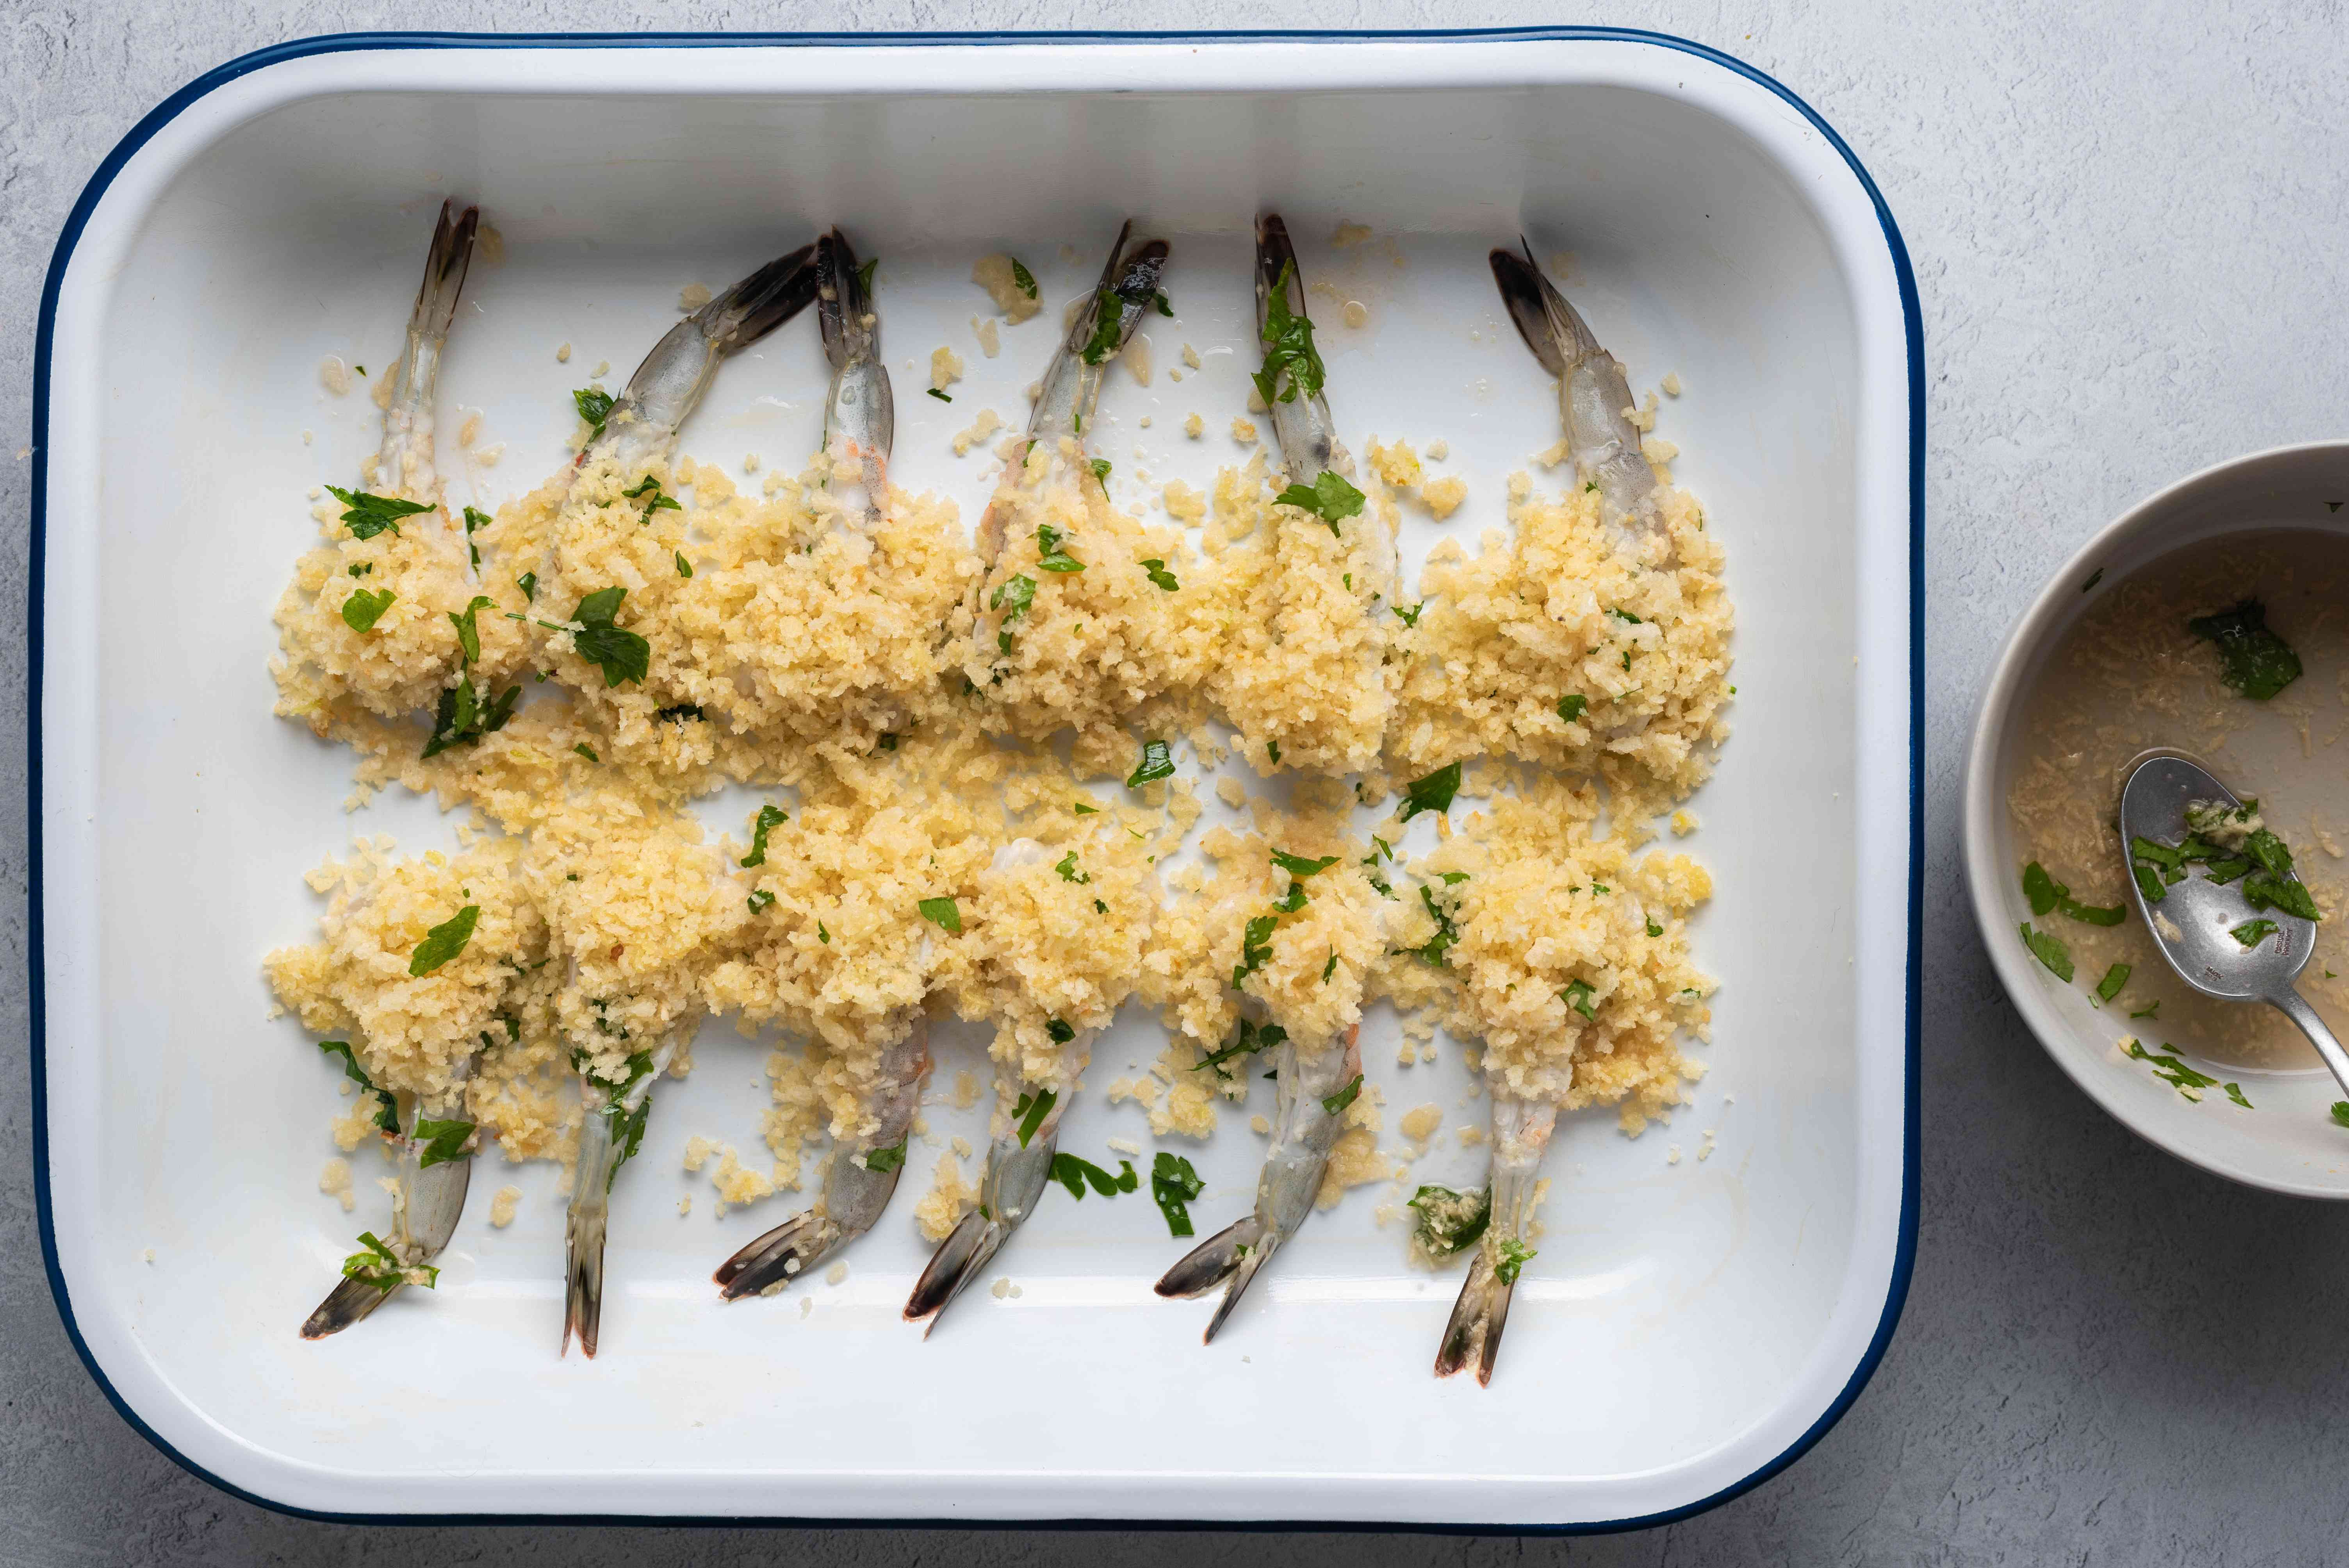 Arrange the stuffed shrimp in the prepared baking dish and drizzle the reserved marinade over the shrimp